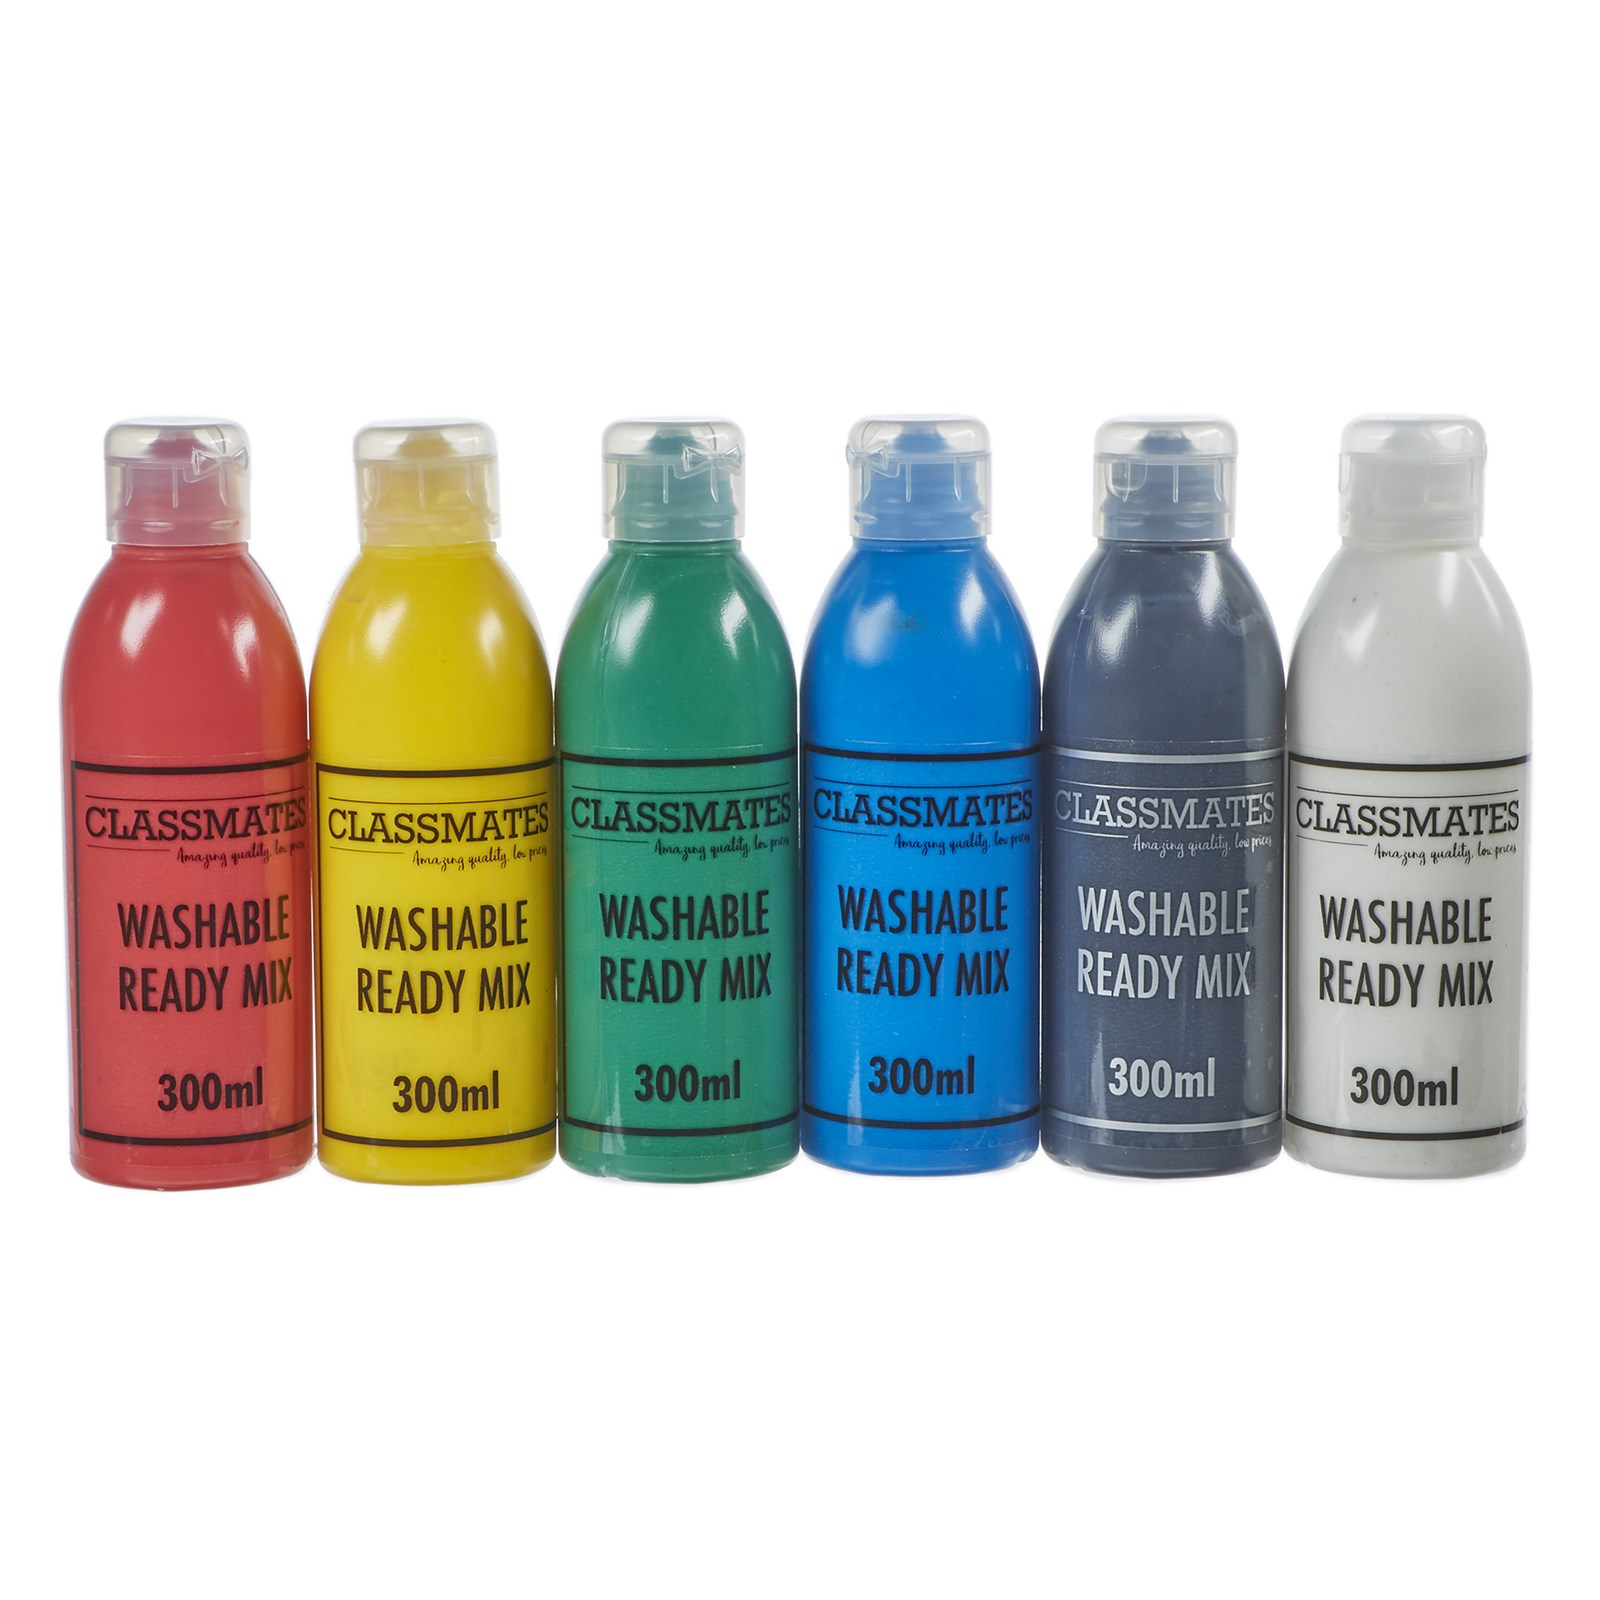 Classmates Washable Ready Mixed Paint in Assorted - Pack of 6 - 300ml Bottle